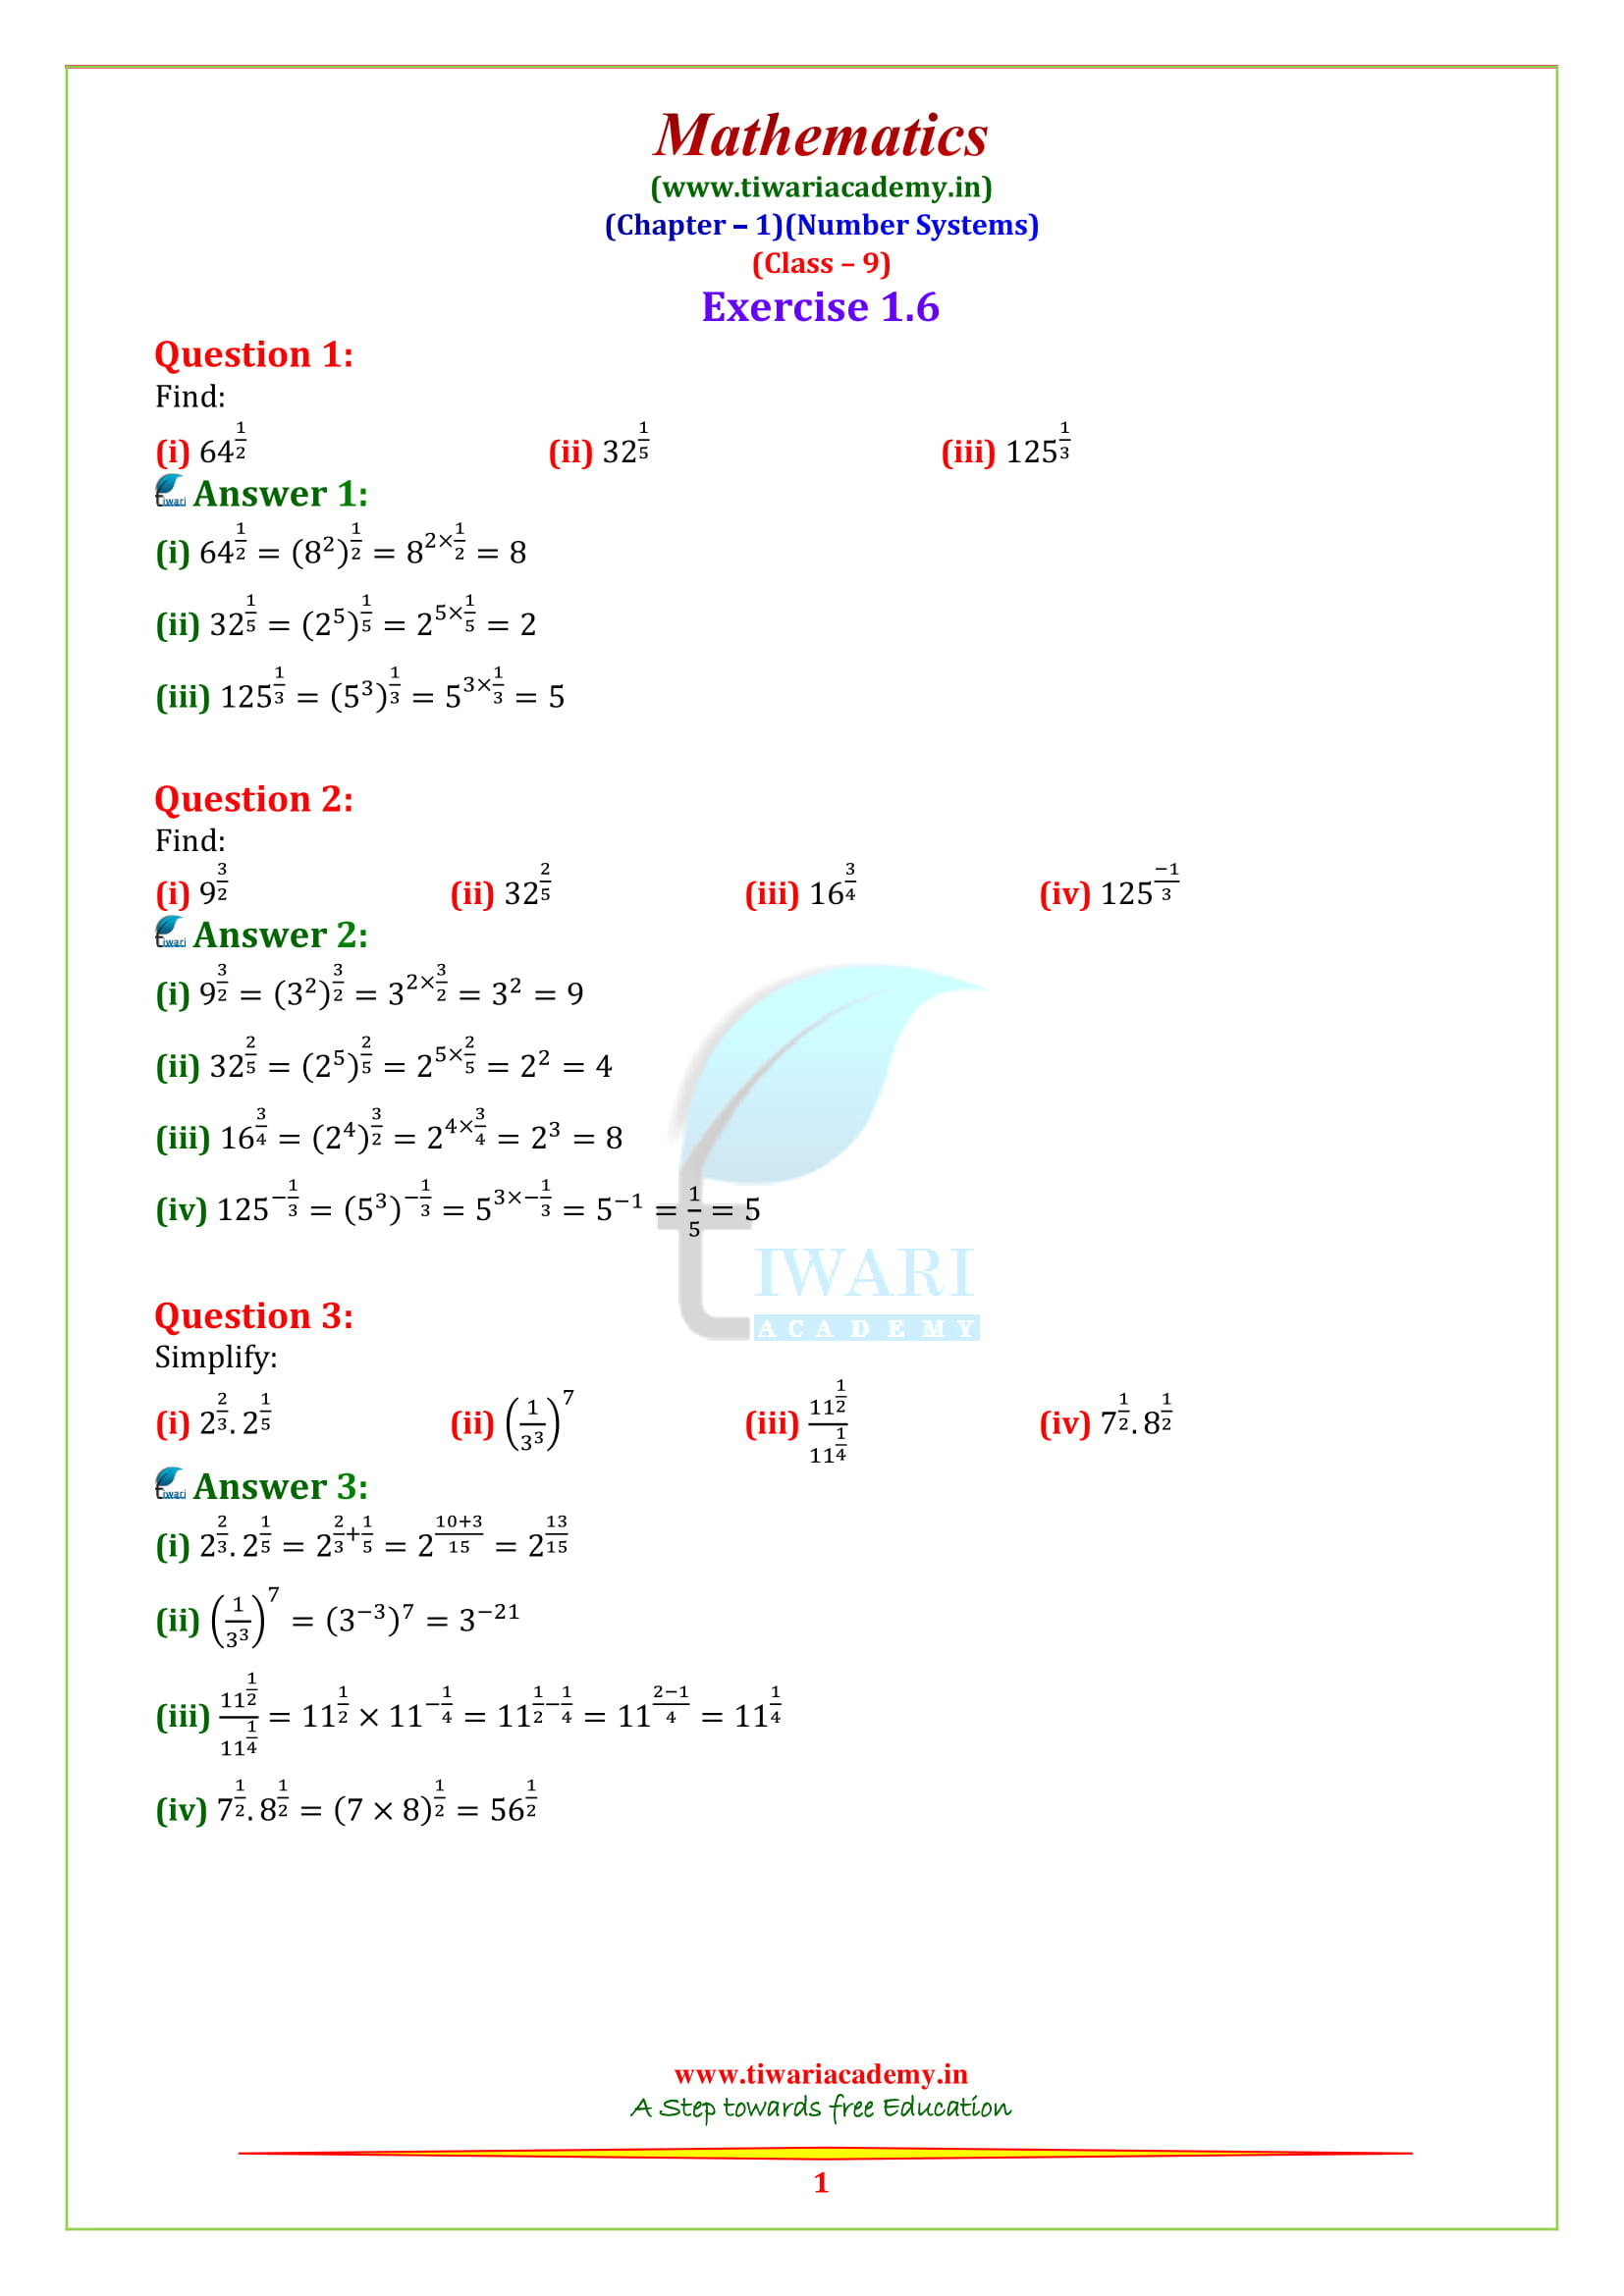 NCERT Solutions for Class 9 Maths Chapter 1 Exercise 1.6